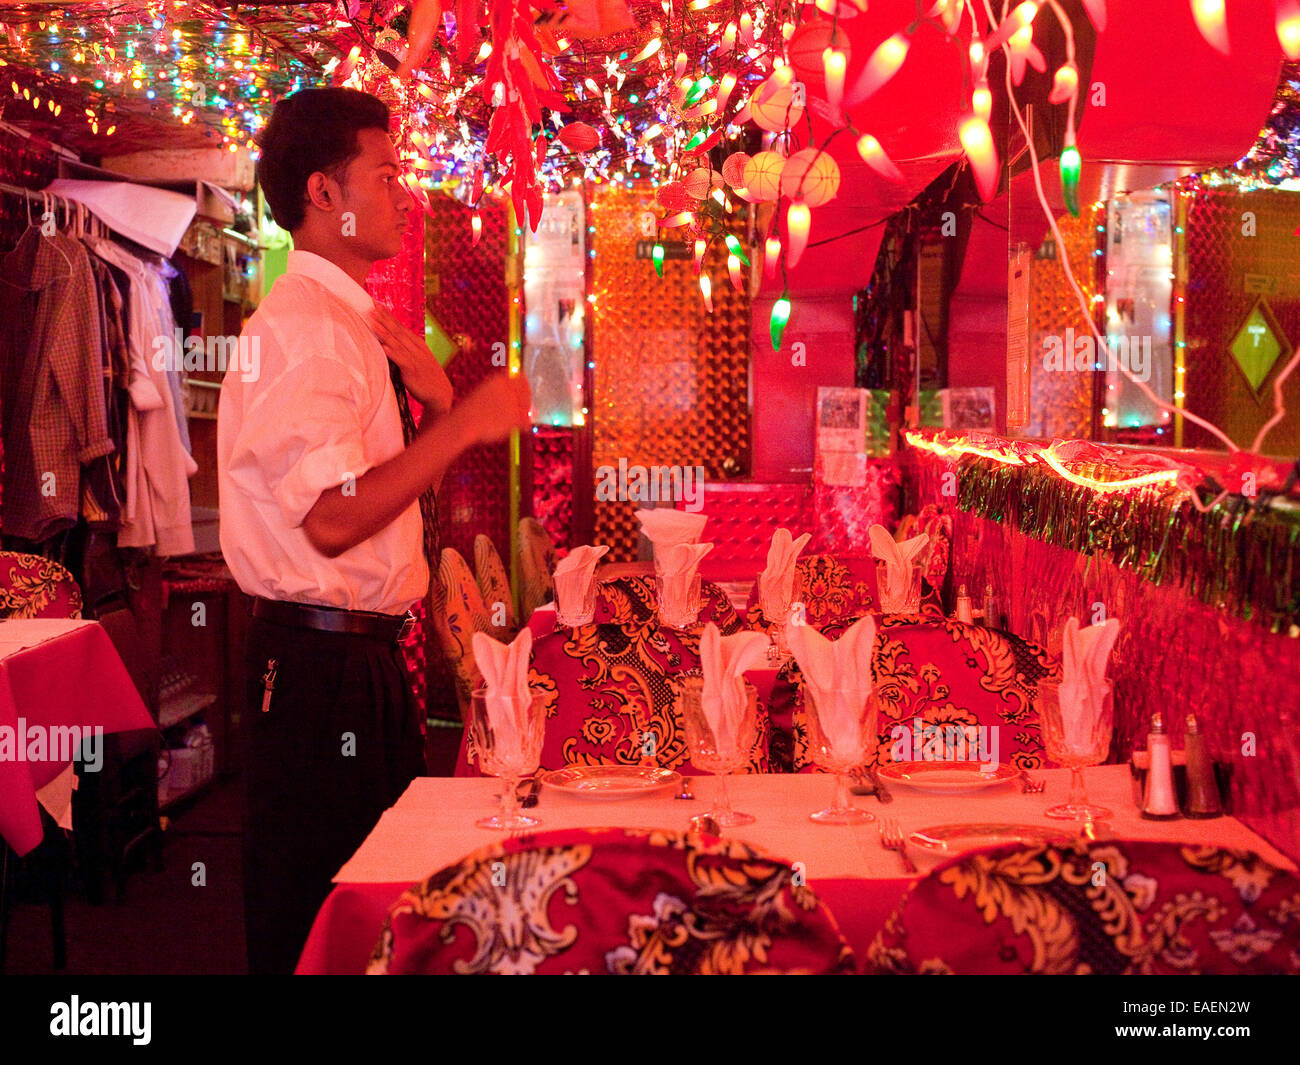 Waiter fixing his tie at Indian restaurant - Stock Image